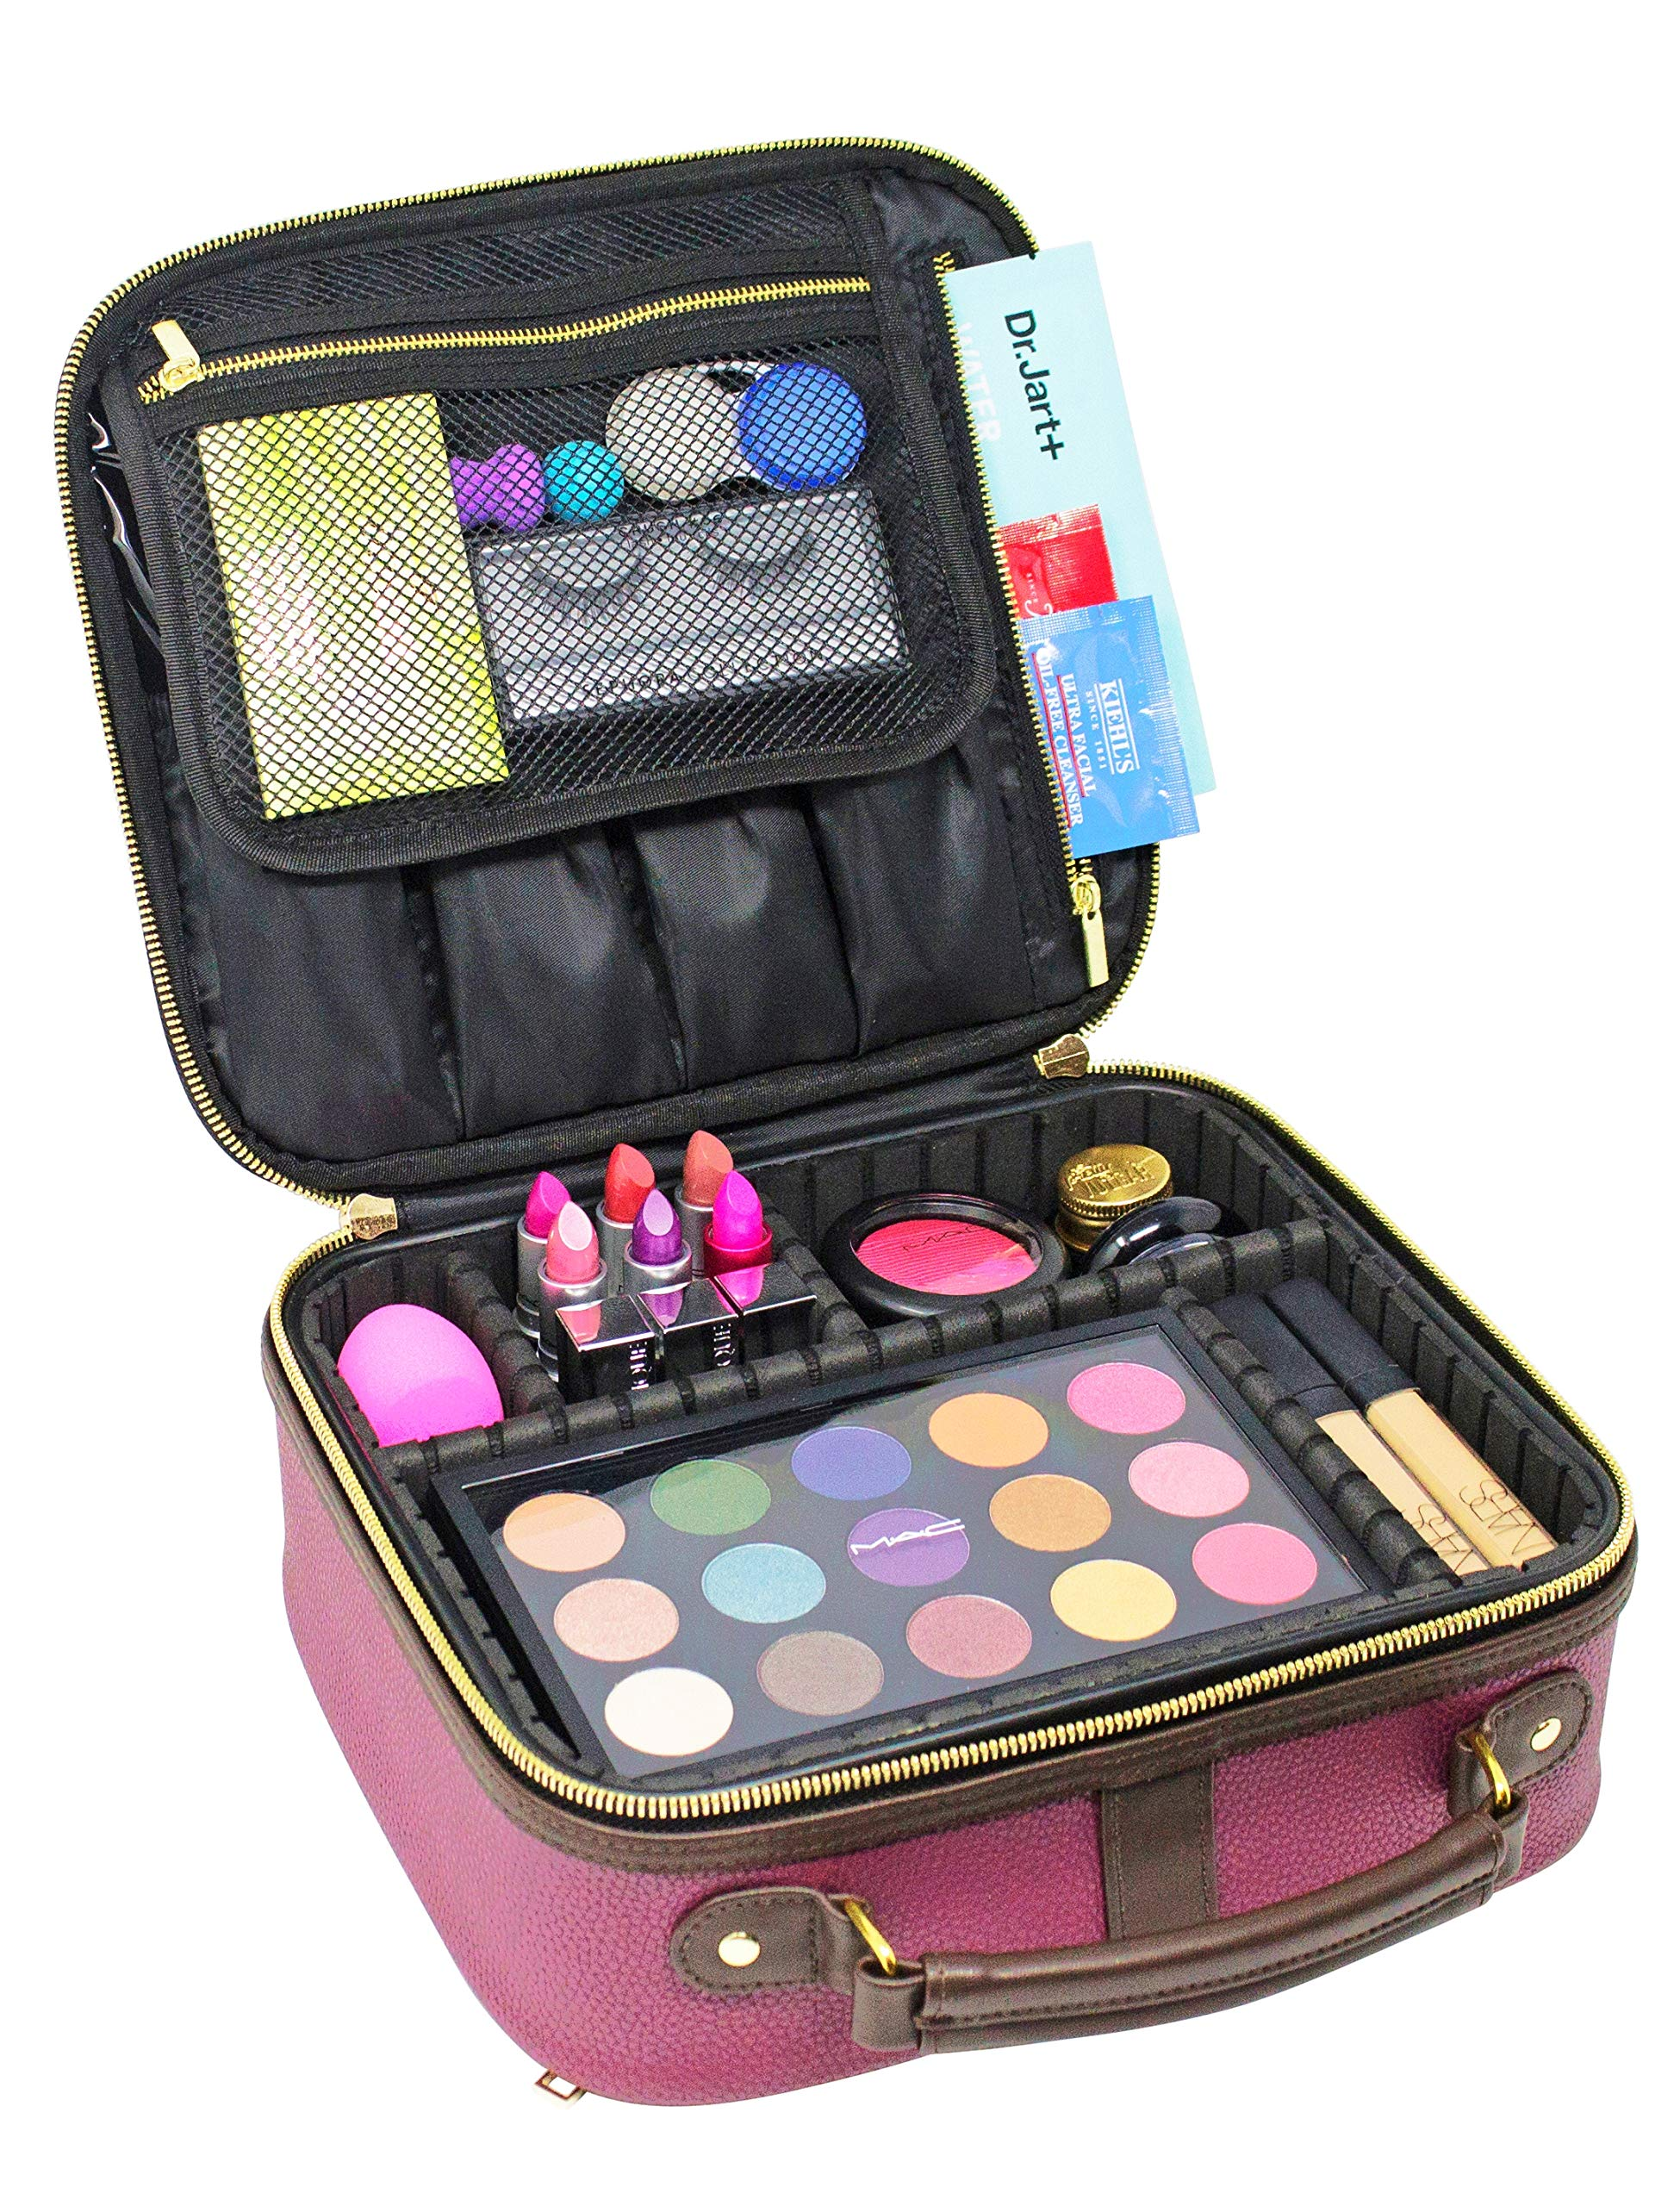 07ce3b112 Waterproof PU Leather Makeup Bag with Adjustable Dividers, Cosmetic Case  Organizer with Large Brush and